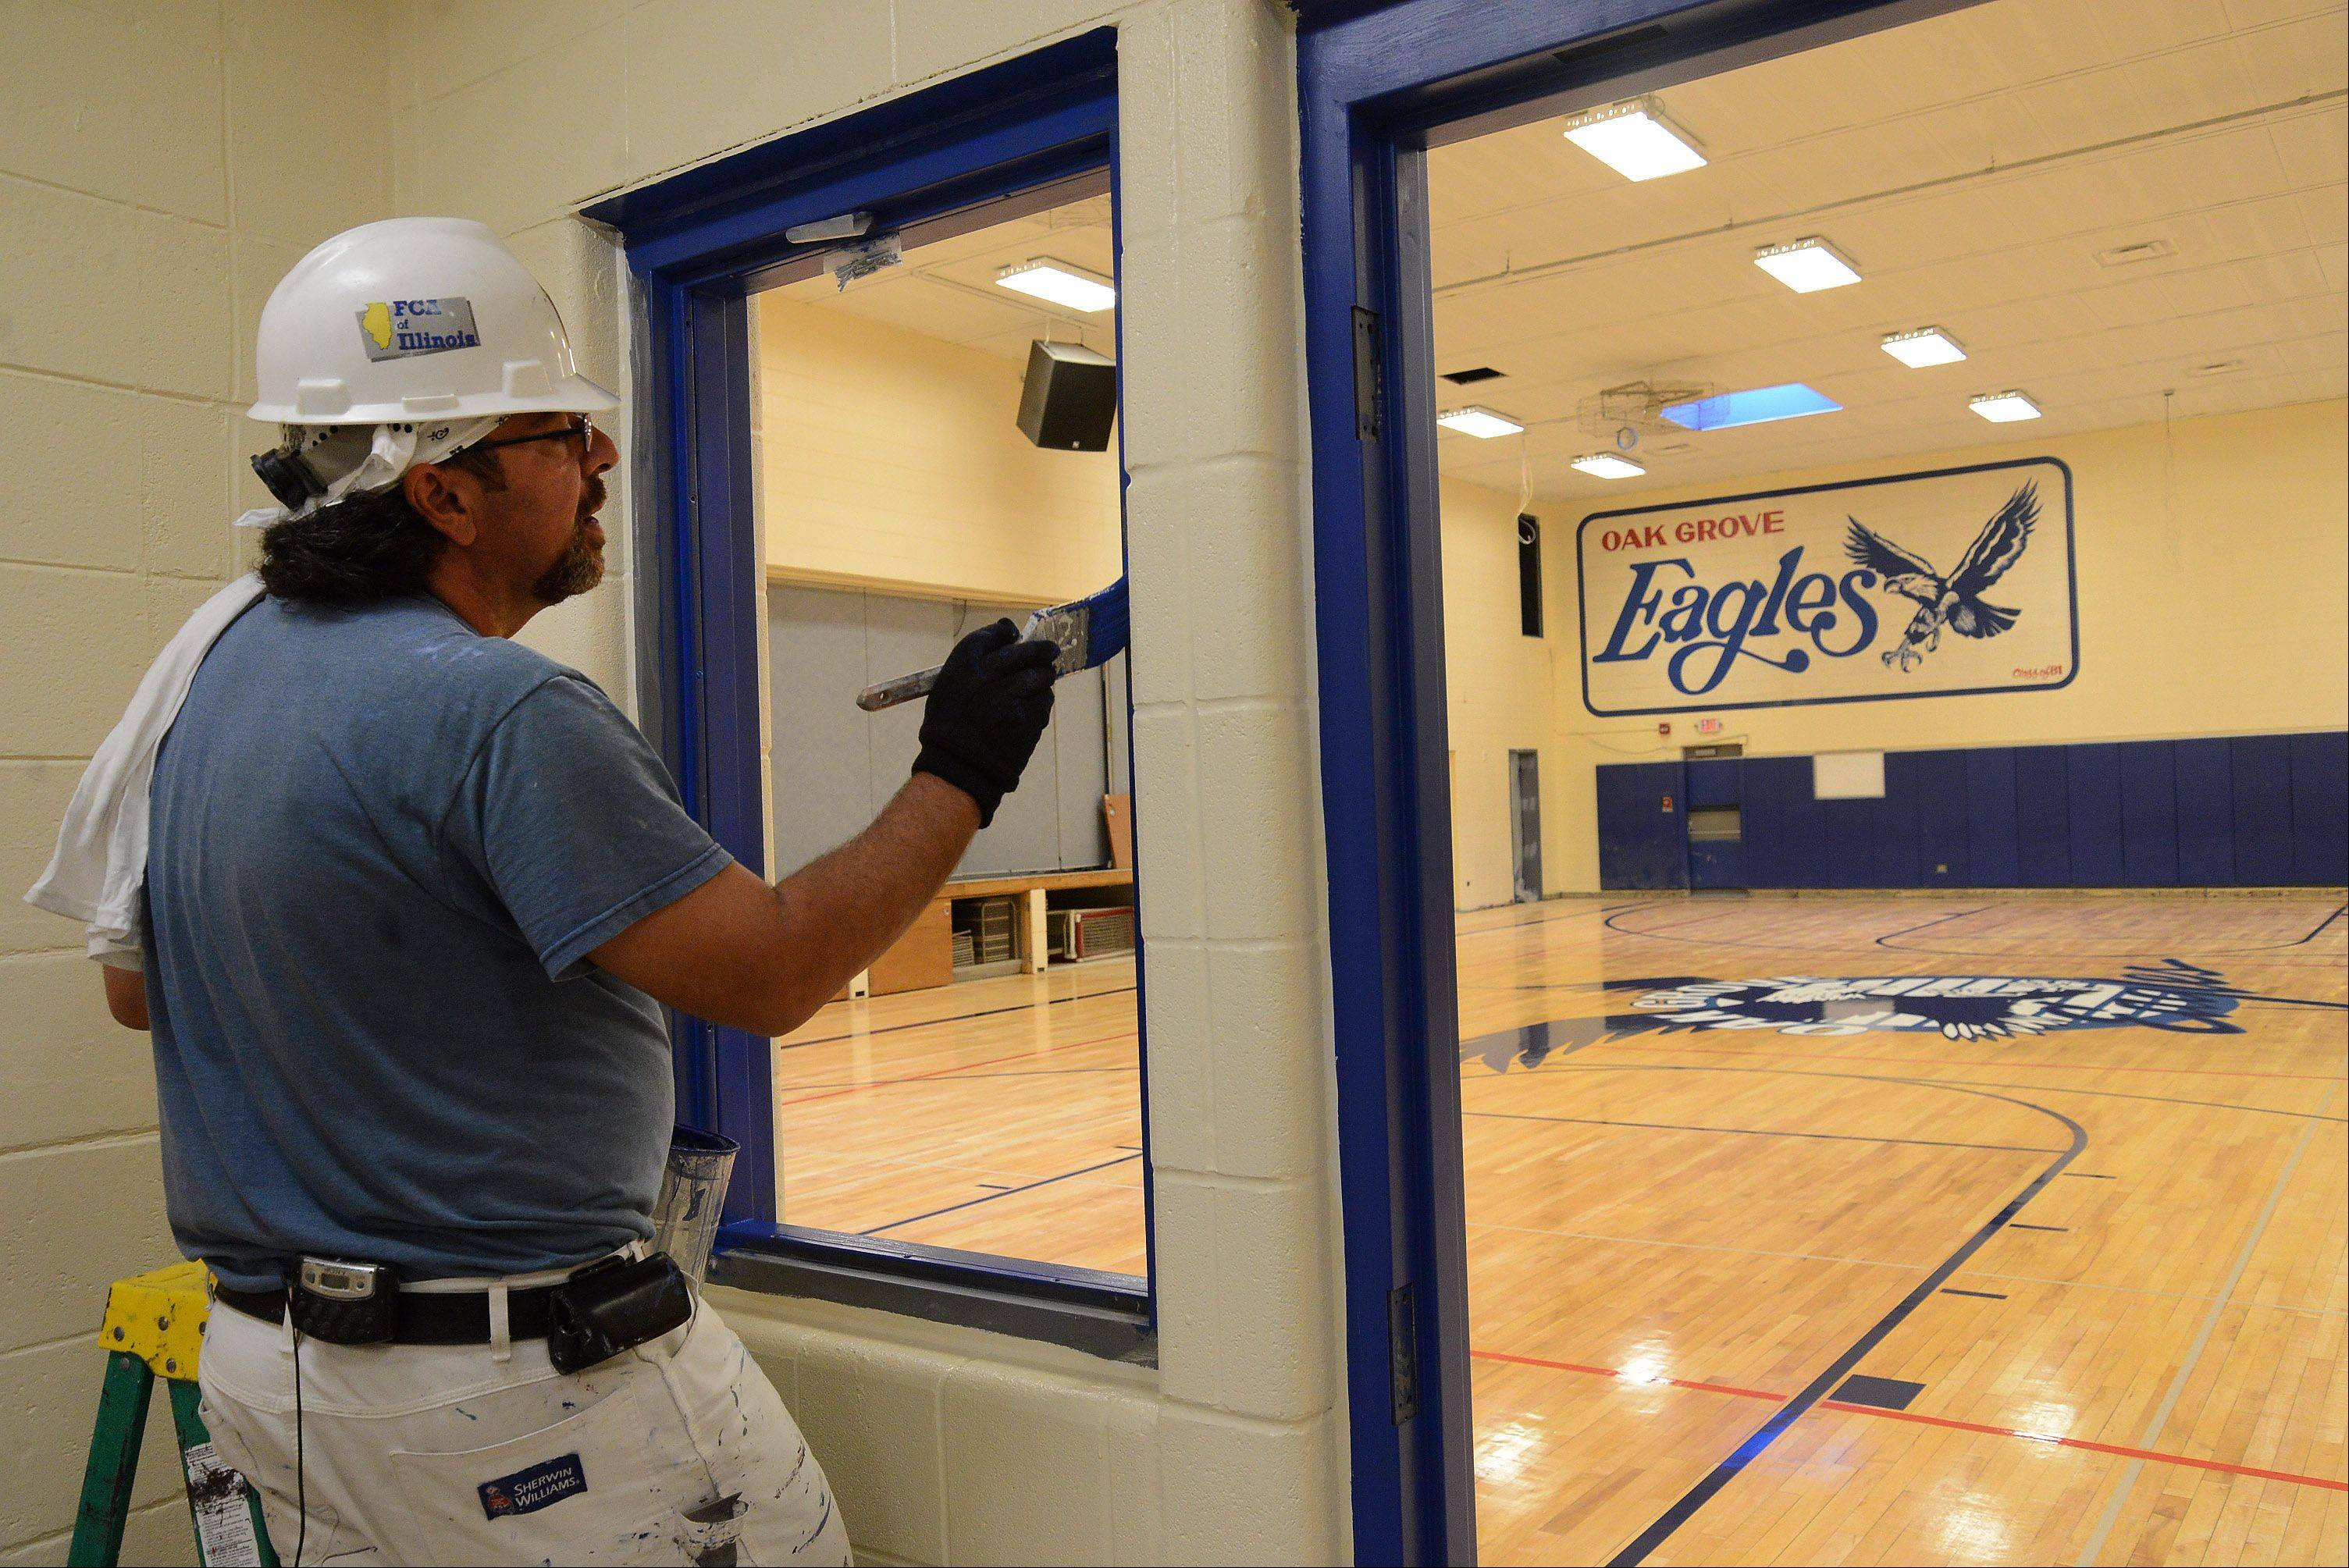 Painter Vince Gravina puts the finishing touches on the junior high gym, as Oak Grove Elementary District 68 in Green Oaks nears the end of this summer�s $3.2 million renovation project.